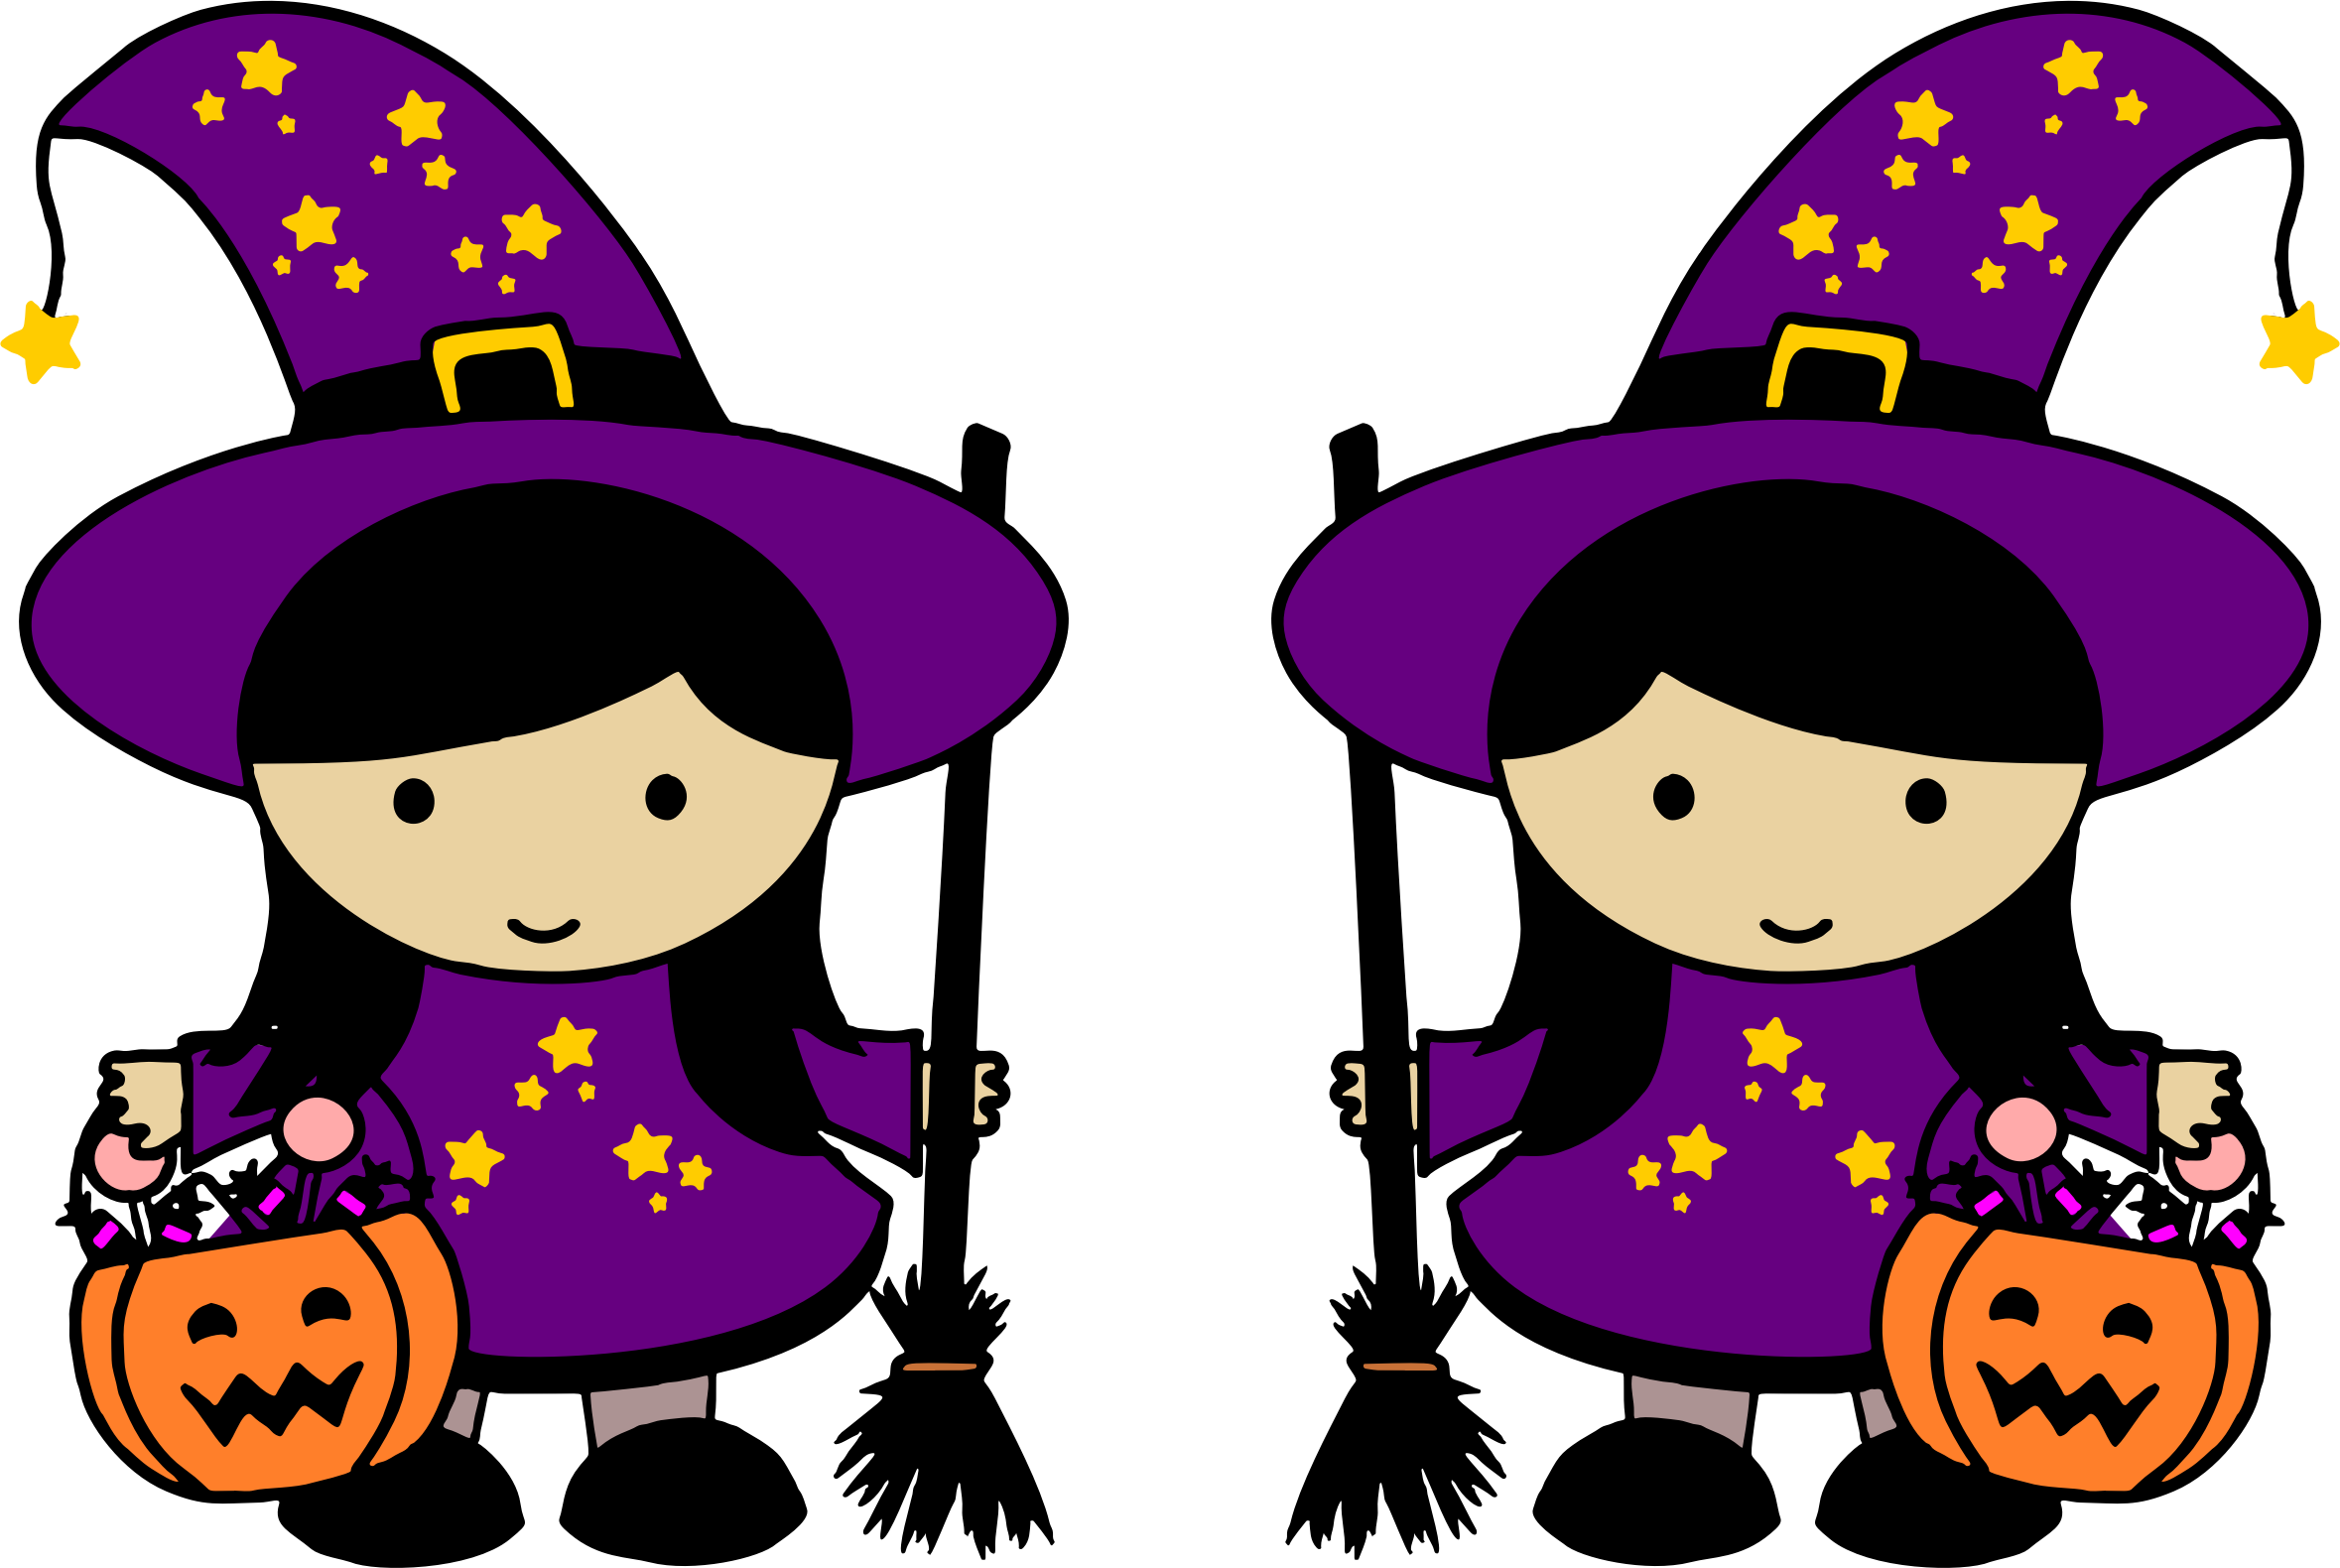 Witches clipart. Twin halloween big image royalty free library